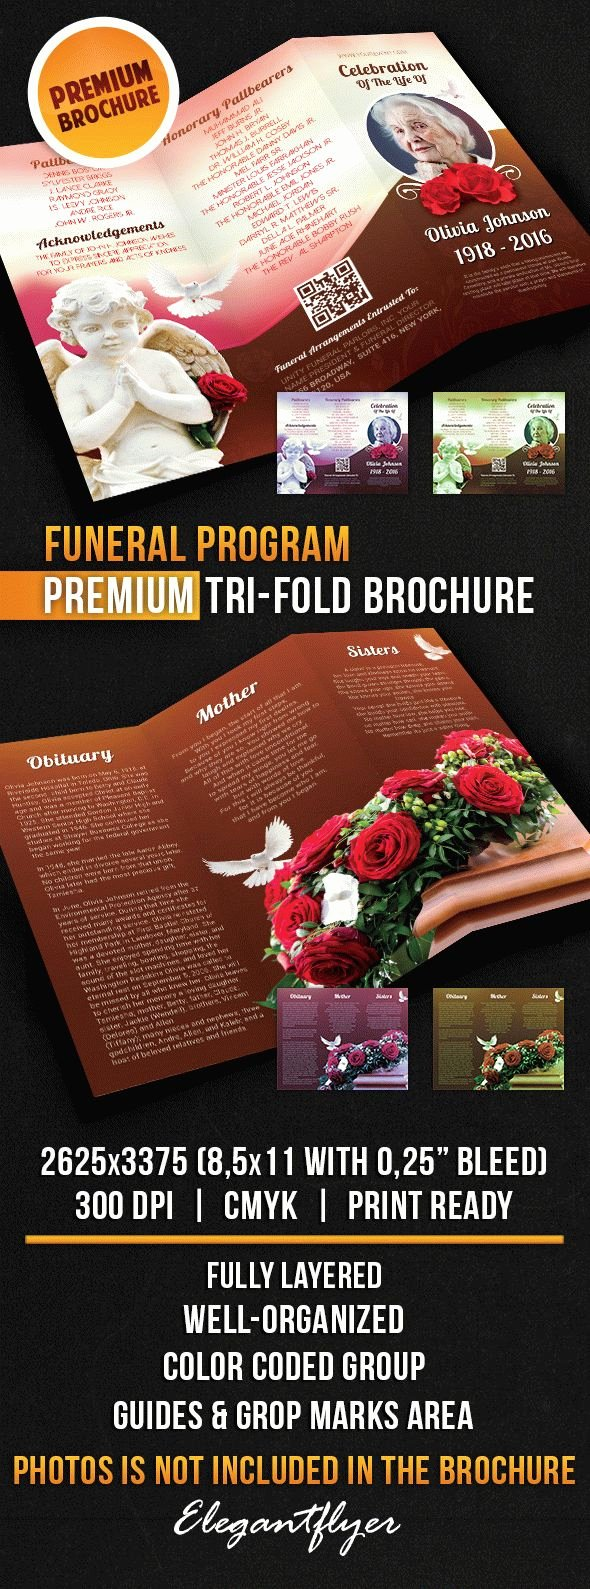 Tri Fold Funeral Program Template New Template Funeral Program Brochure Tri Fold – by Elegantflyer